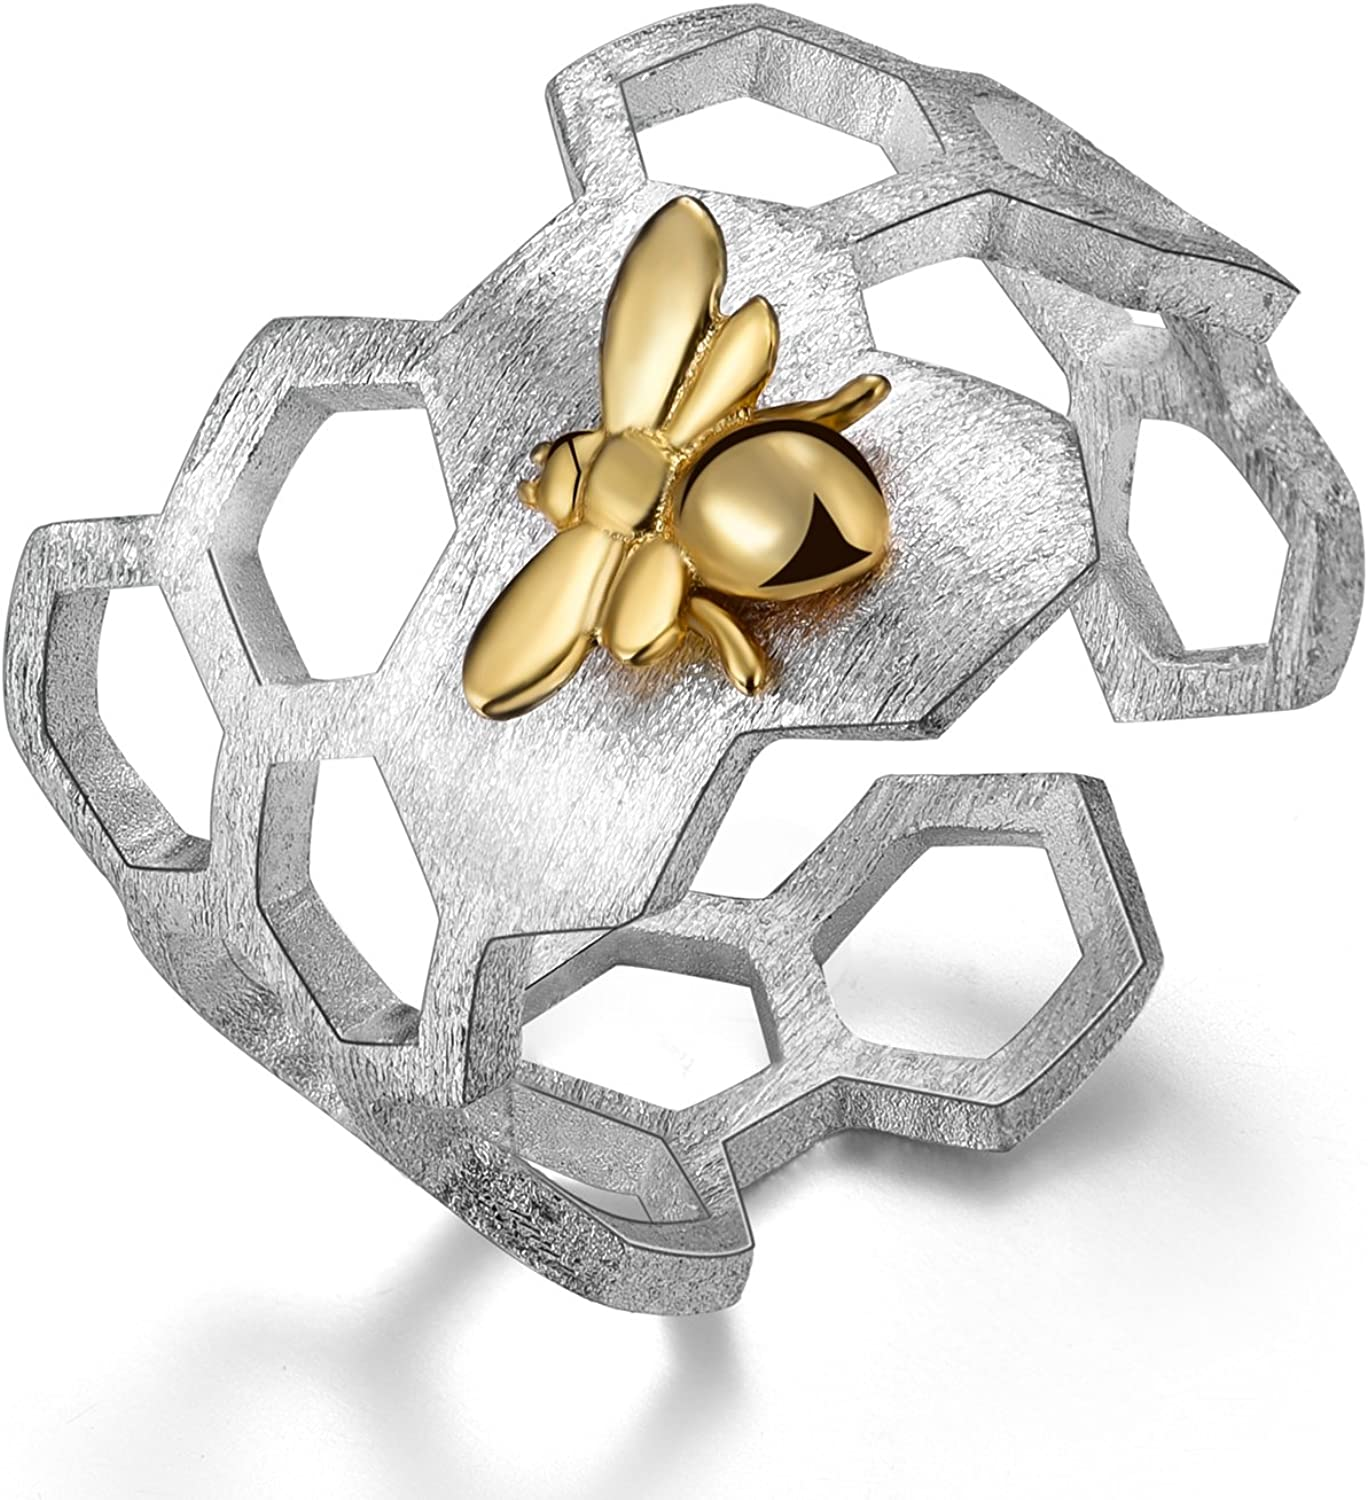 Honeycomb and Bee Adjustable Ring Sterling Silver,Bee Open Cuff Ring,Honeycomb Ring,Gold Bee and Honeycomb Ring,Perfect Gift,Minimalist Ring